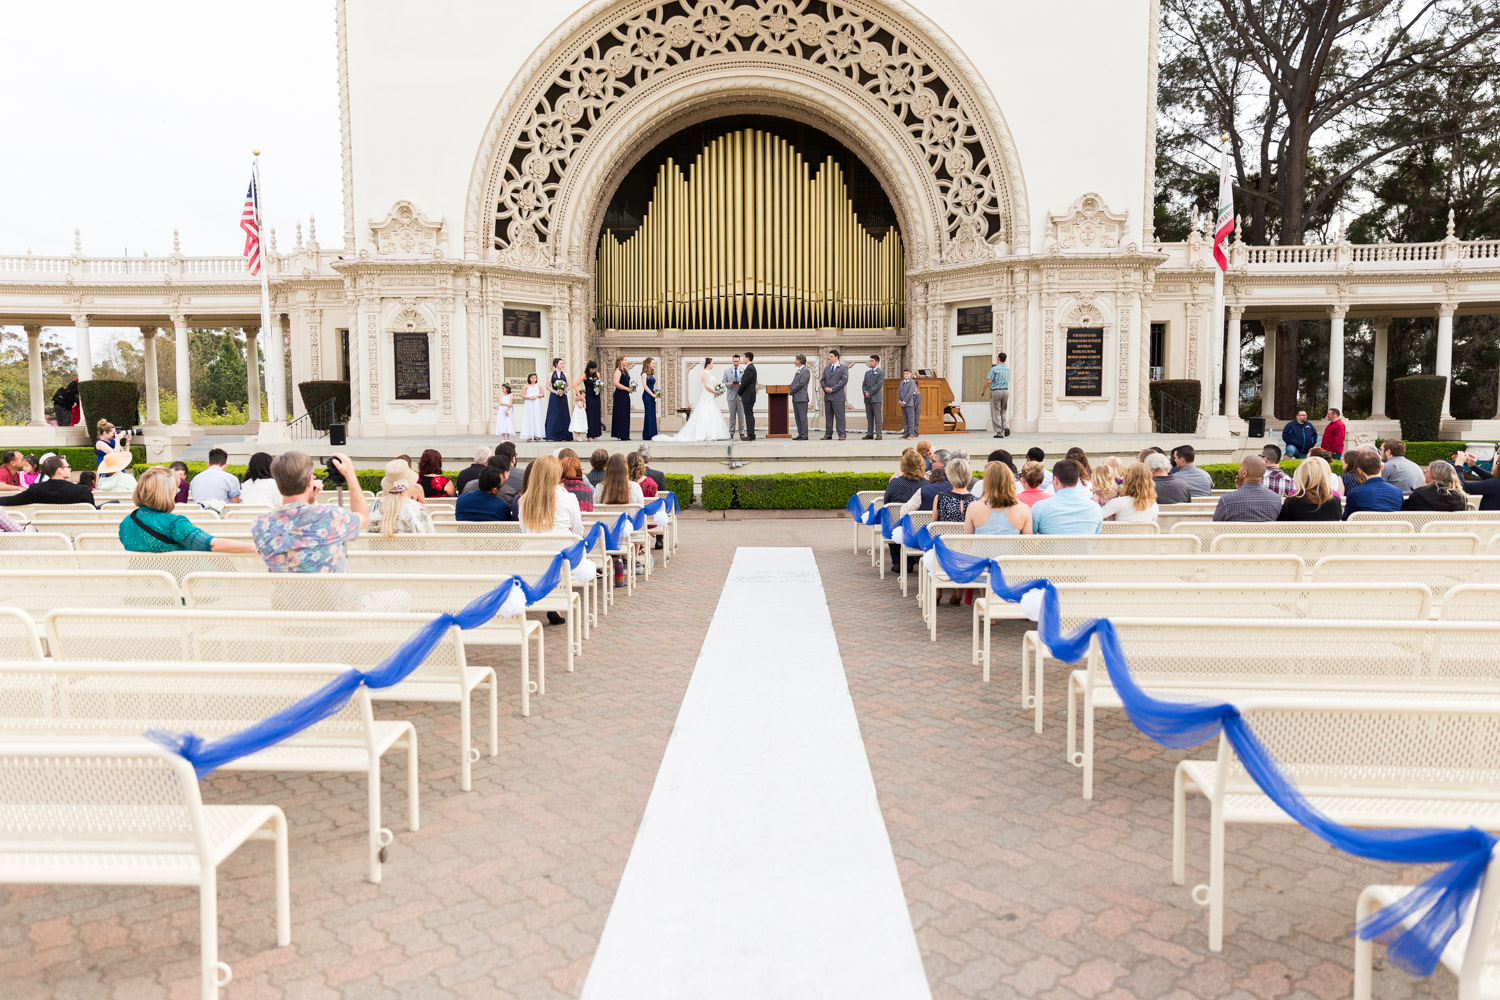 Balboa Park Organ Pavilion Wedding